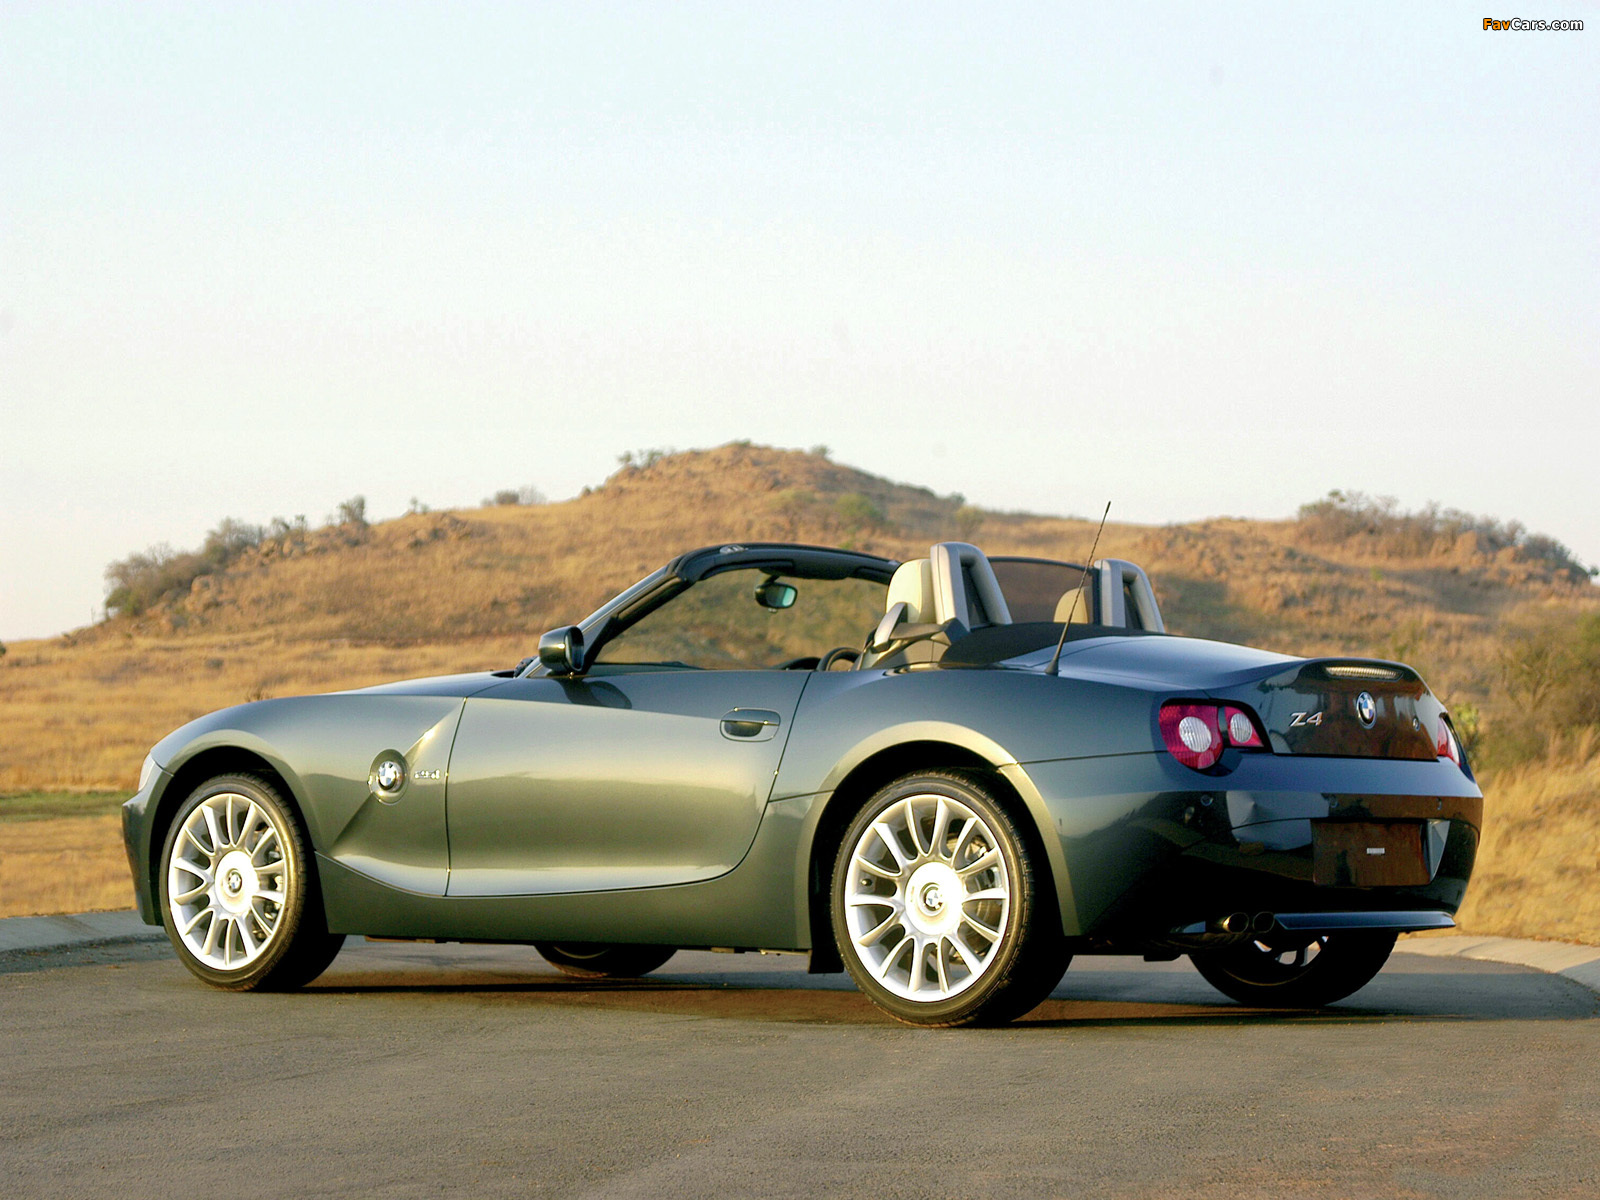 Bmw Z4 Roadster Individual E85 2004 Wallpapers 1600x1200